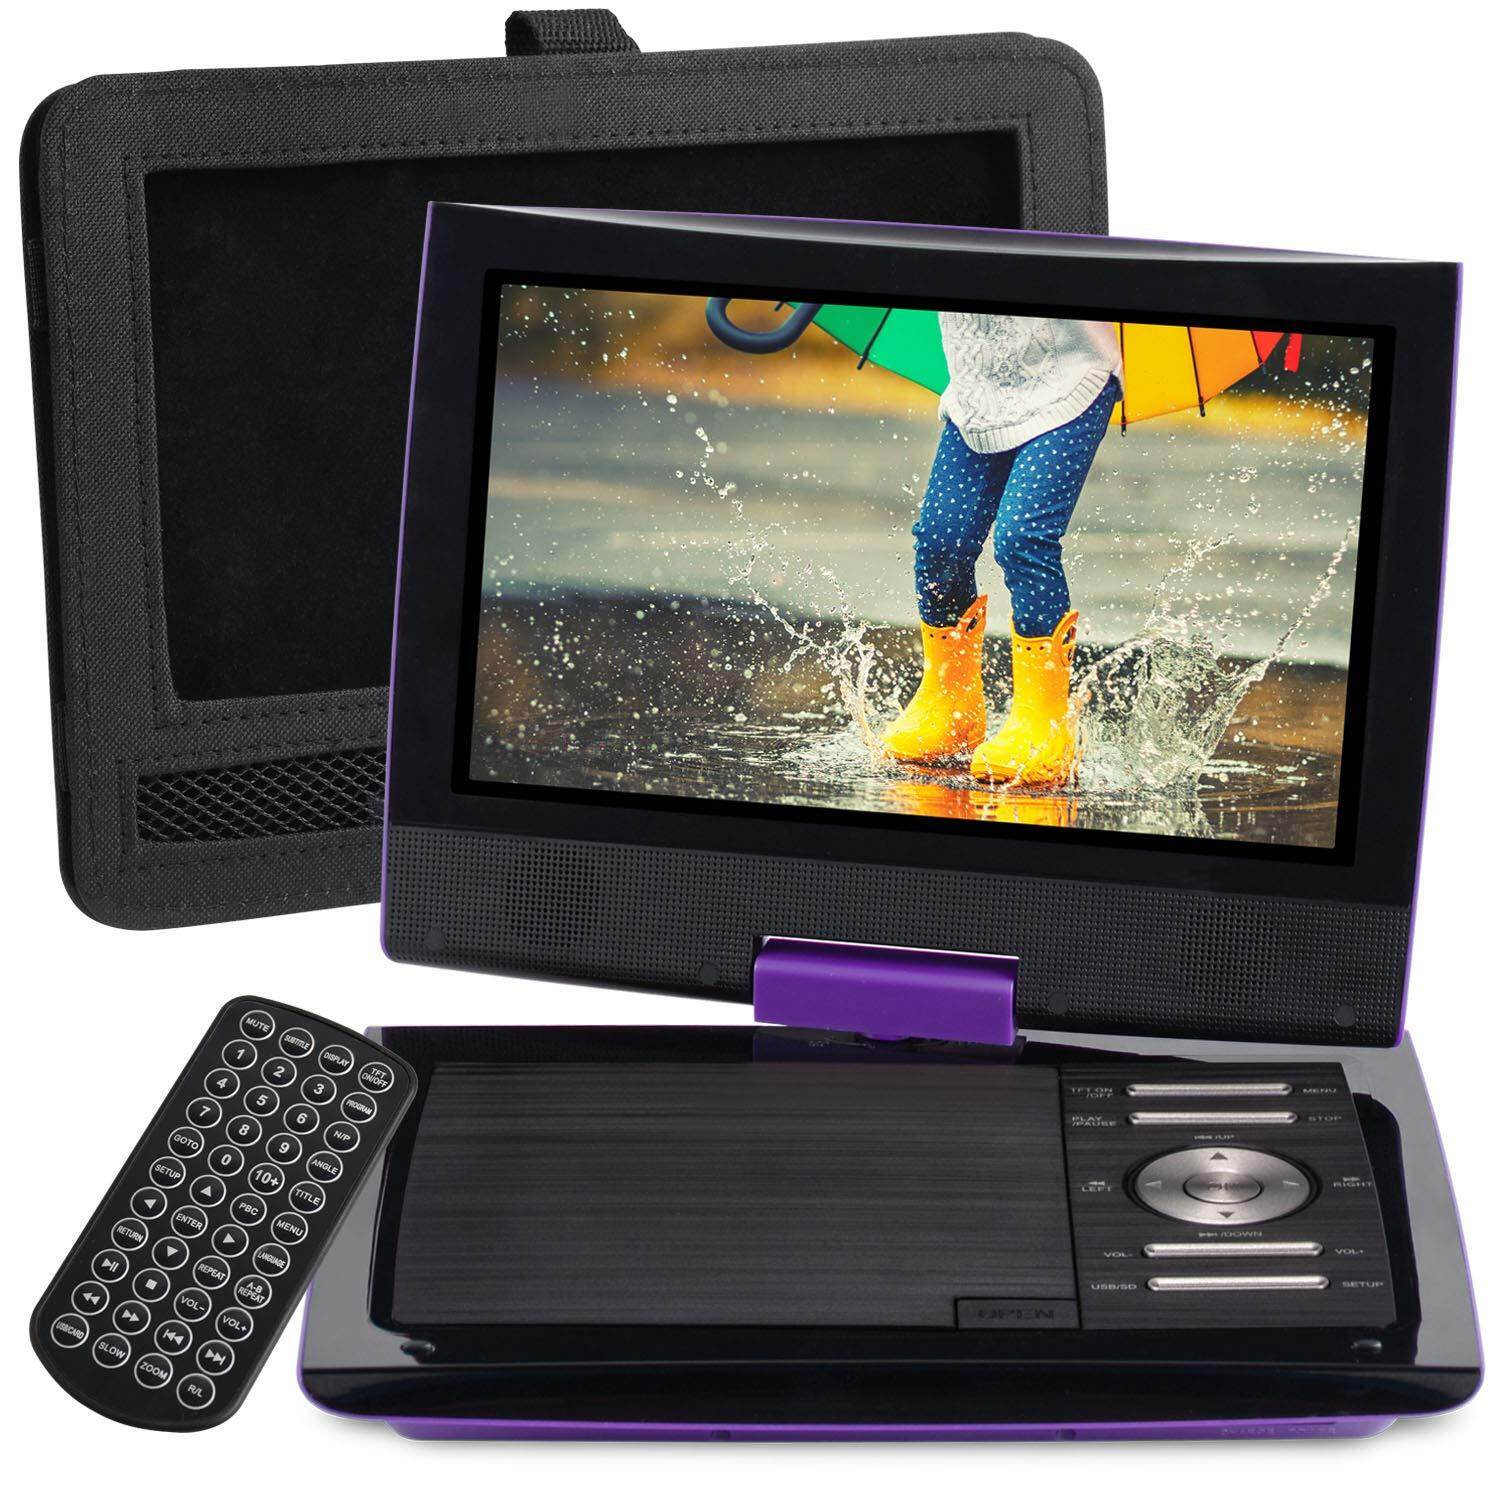 "SUNPIN 11"" Portable DVD Player with 9.5 inch HD Swivel Screen, Dual Earphone Jack, Supports SD Card/USB/CD/DVD and Multiple Disc Formats, Headrest Mount Holder, Car Charger, Power Adaptor (Purple)"